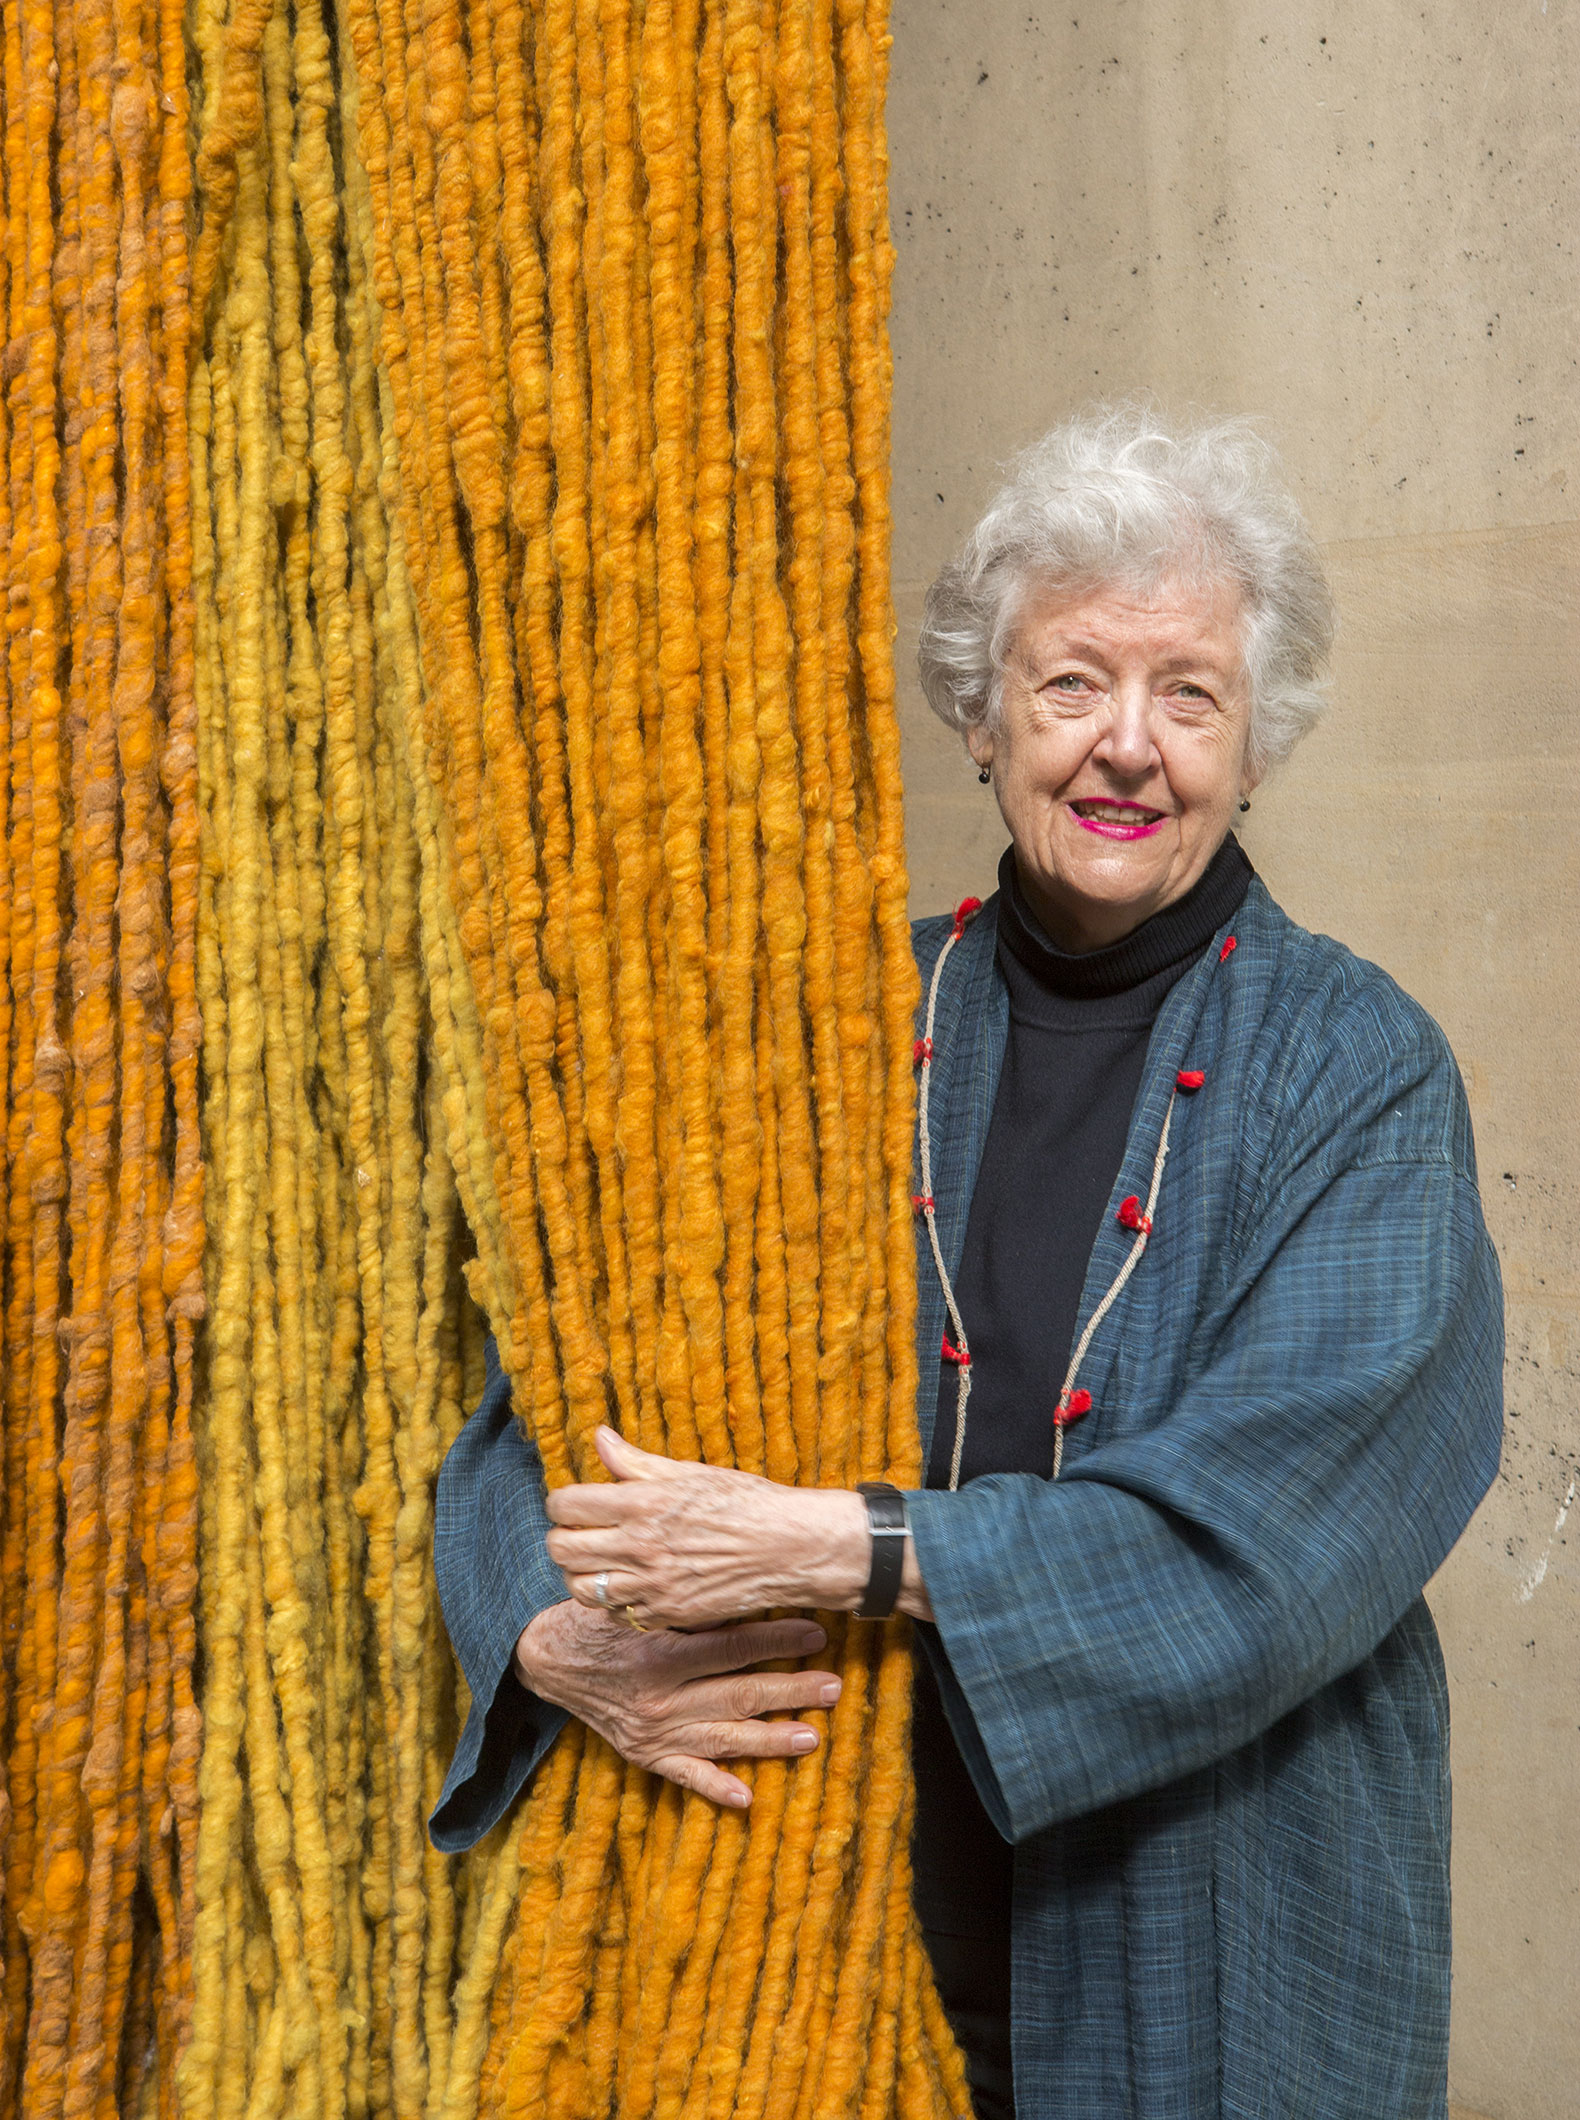 "Sheila Hicks presents at the Georges Pompidou Center ""Lignes de vie"" [Life lines]. Photography © Cristobal Zanartu"